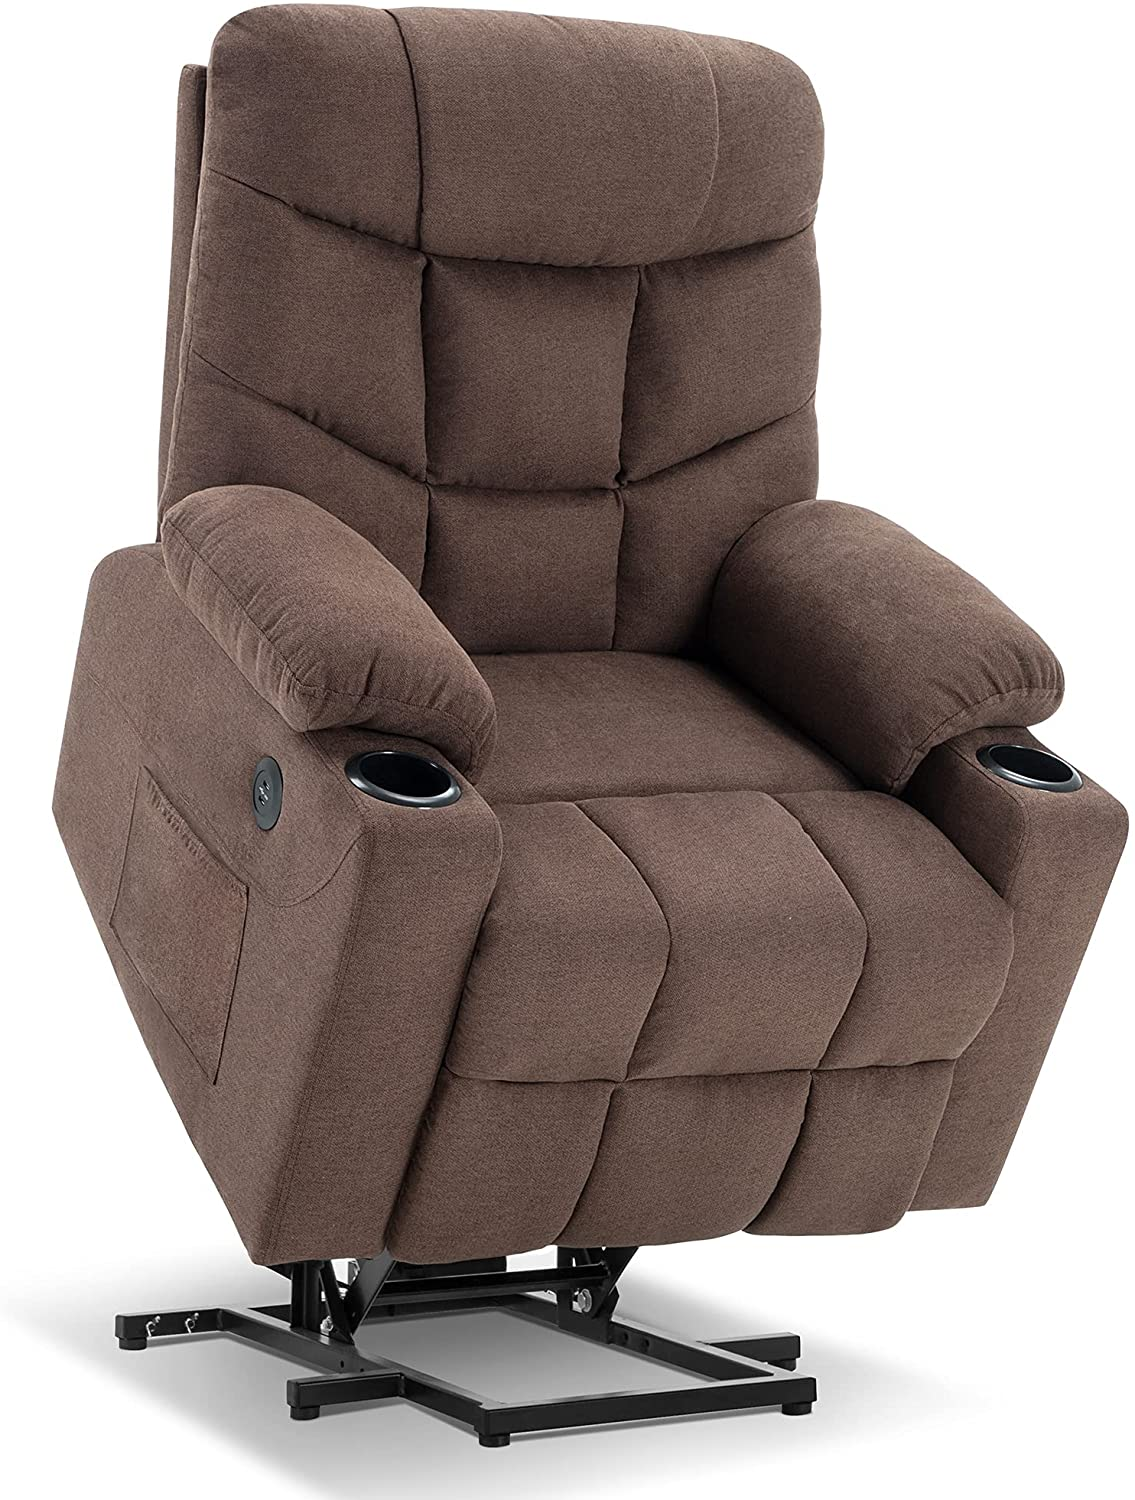 Mcombo Electric Power Lift Recliner Chair